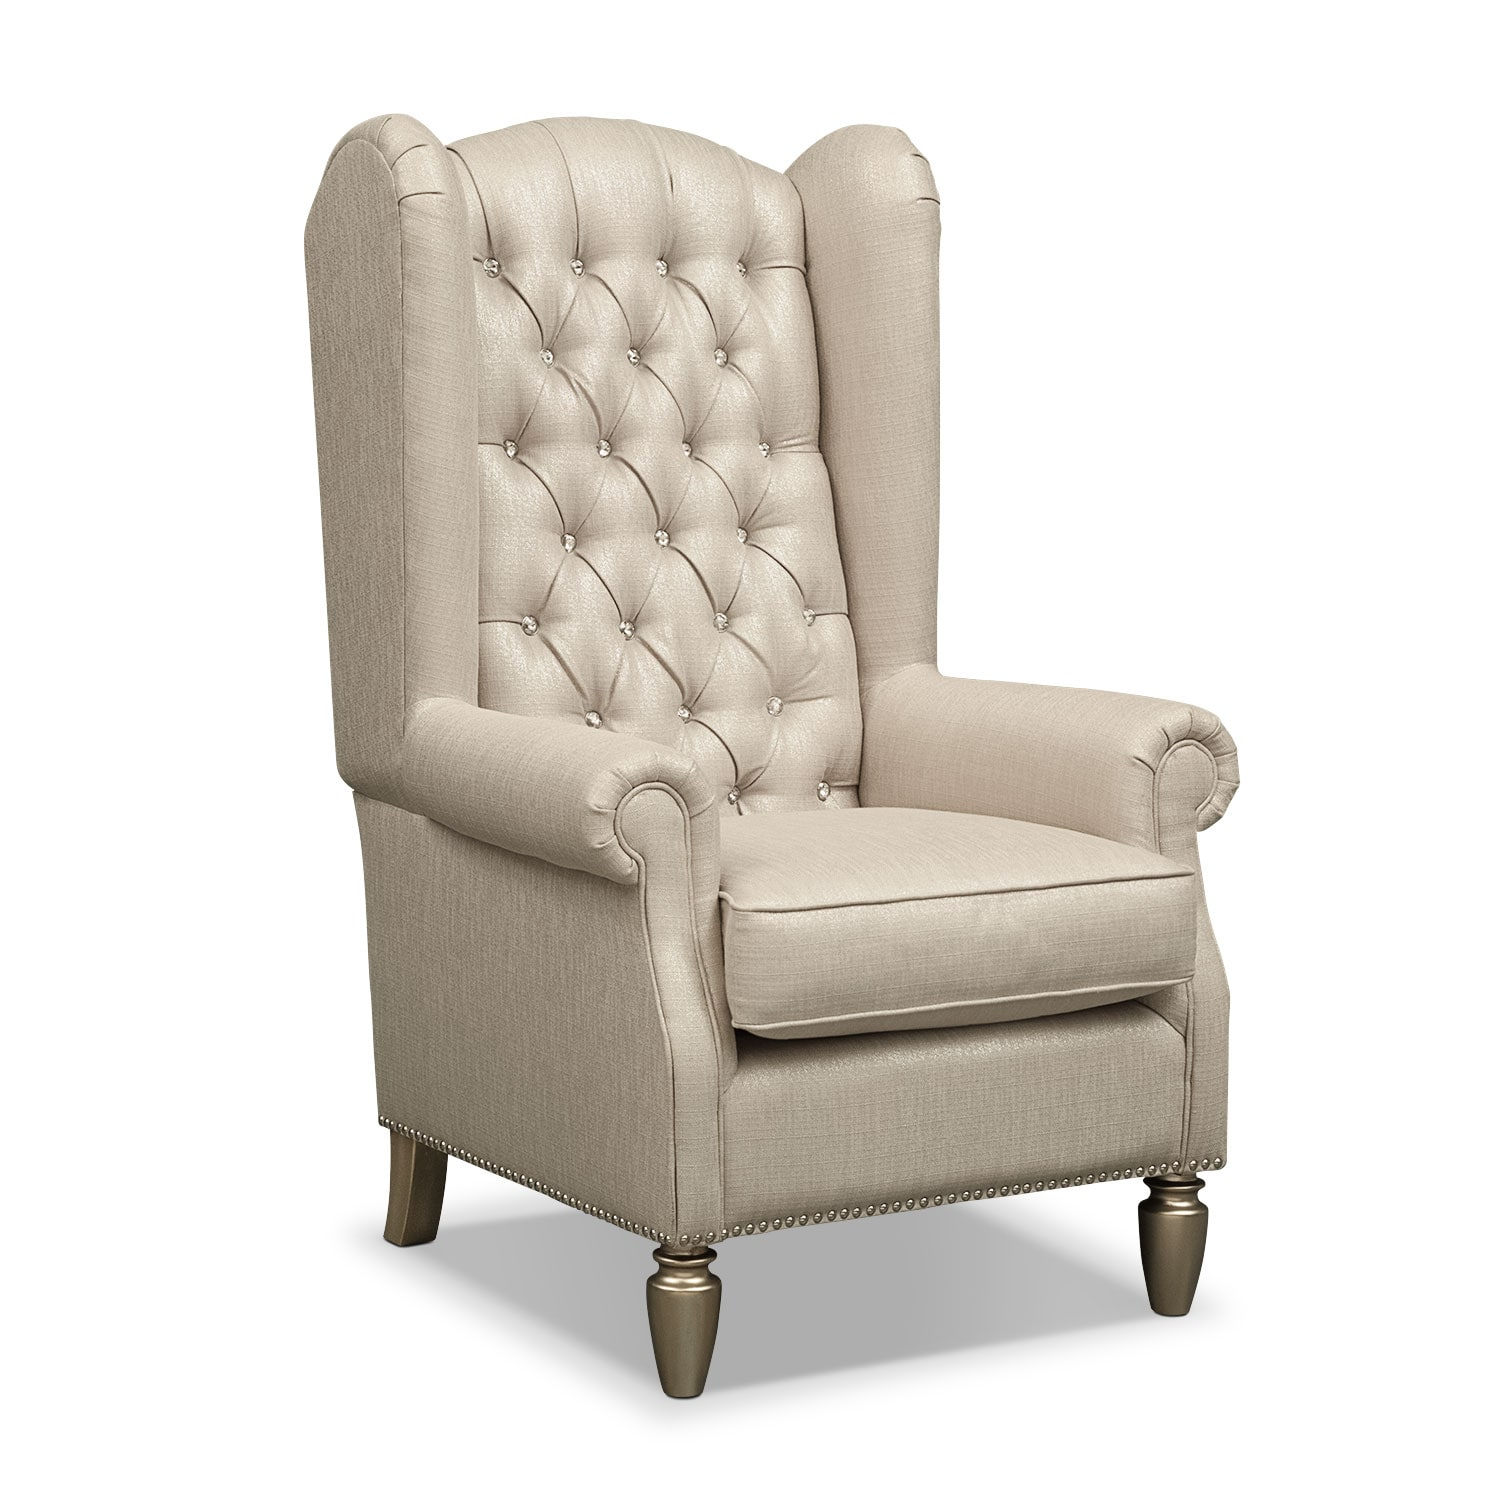 Cleo accent chair platinum value city furniture for Occasional furniture